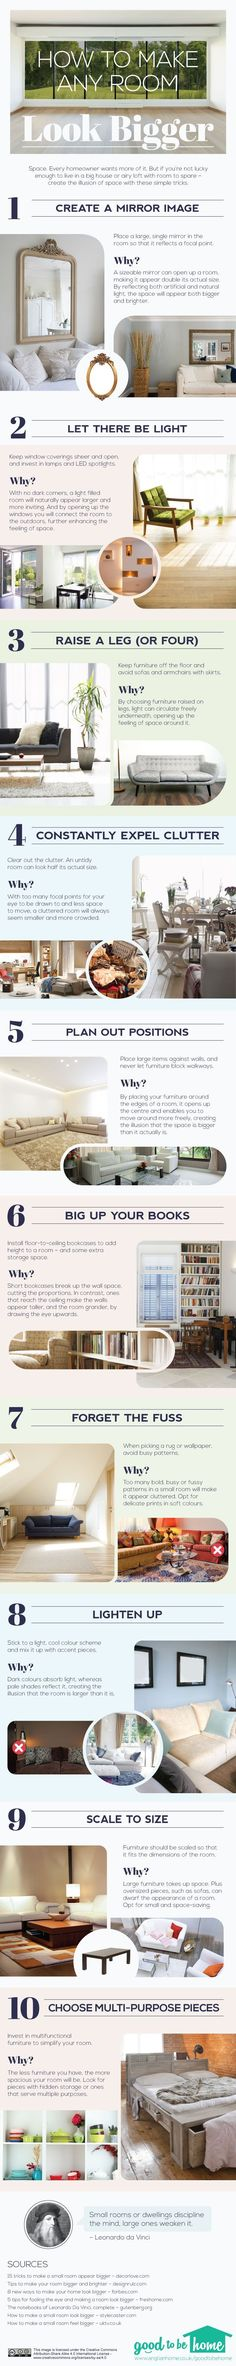 Great tips on how to make any room feel larger. I love this for the particularly dark and narrow spaces we have in our home